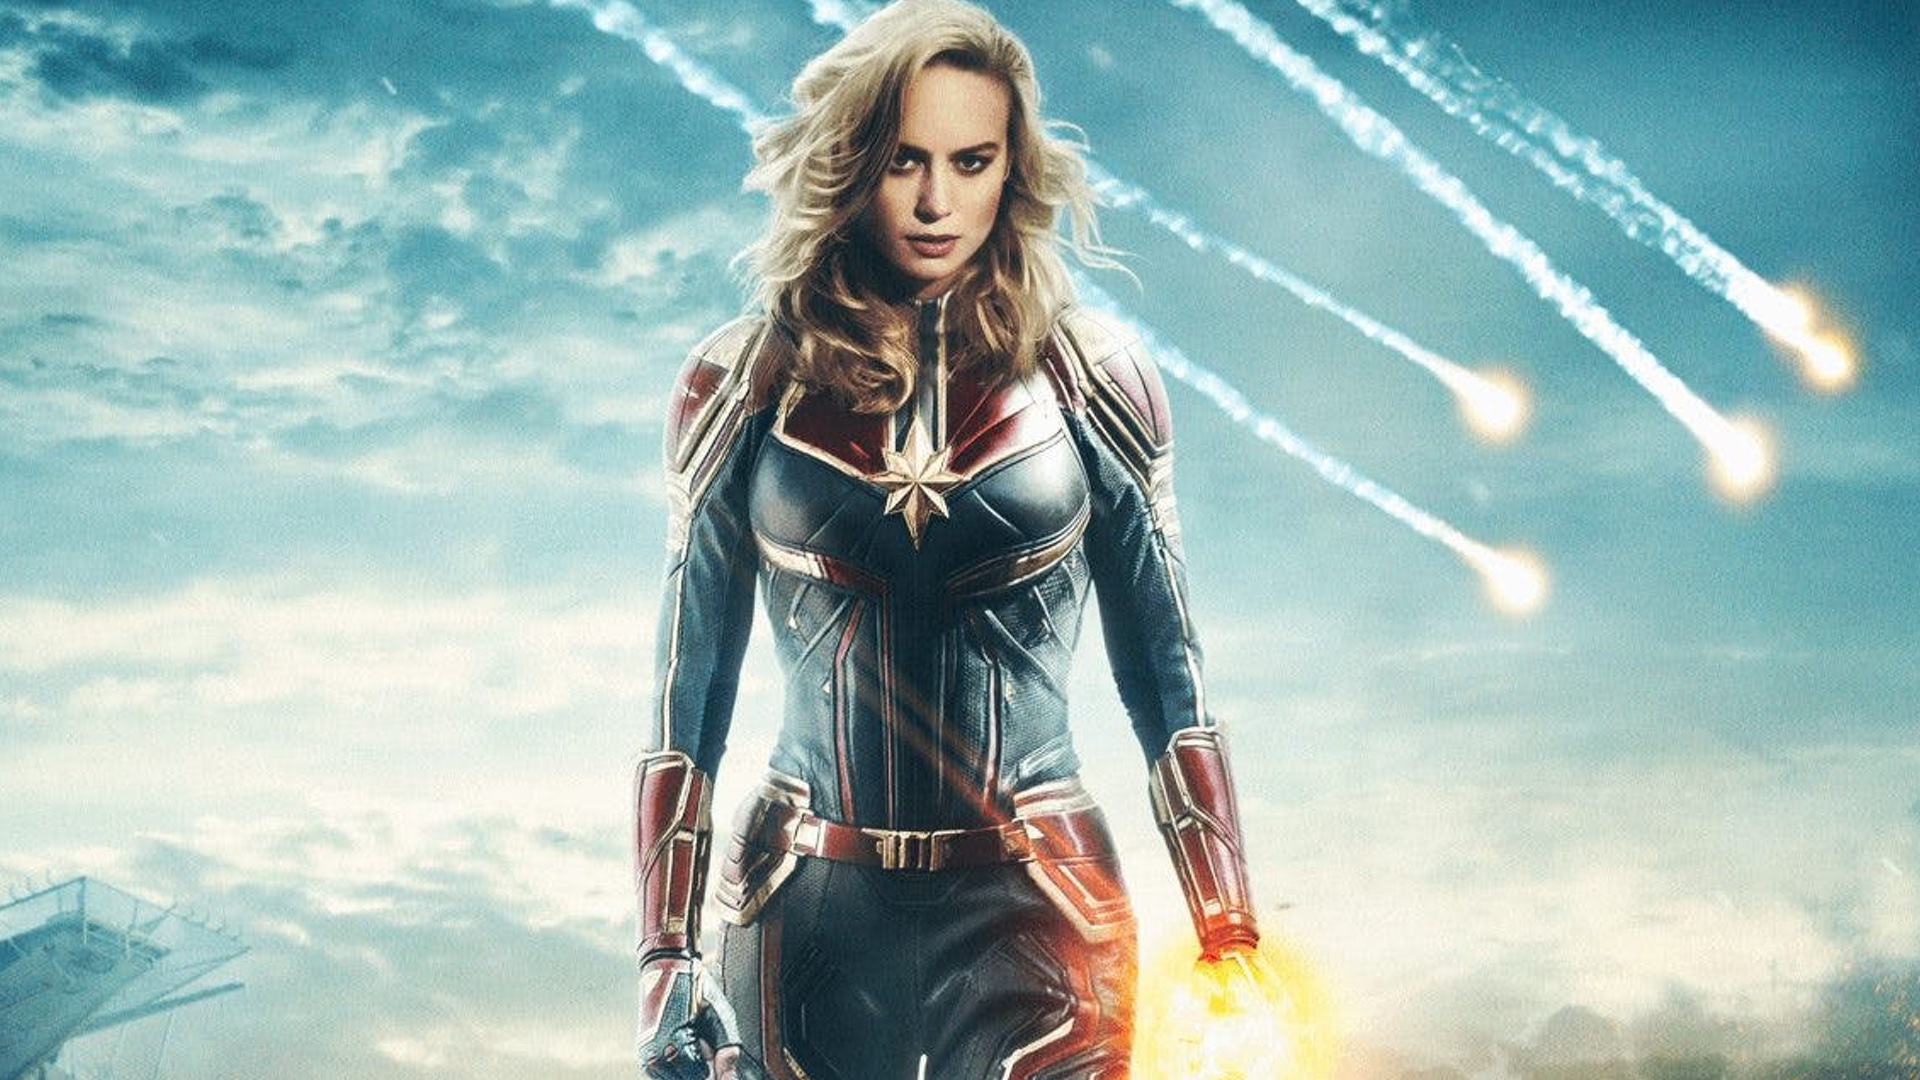 Pinar Toprak, first female, composer, score, Captain Marvel, Avengers, NewsMobile, Mobile news, India